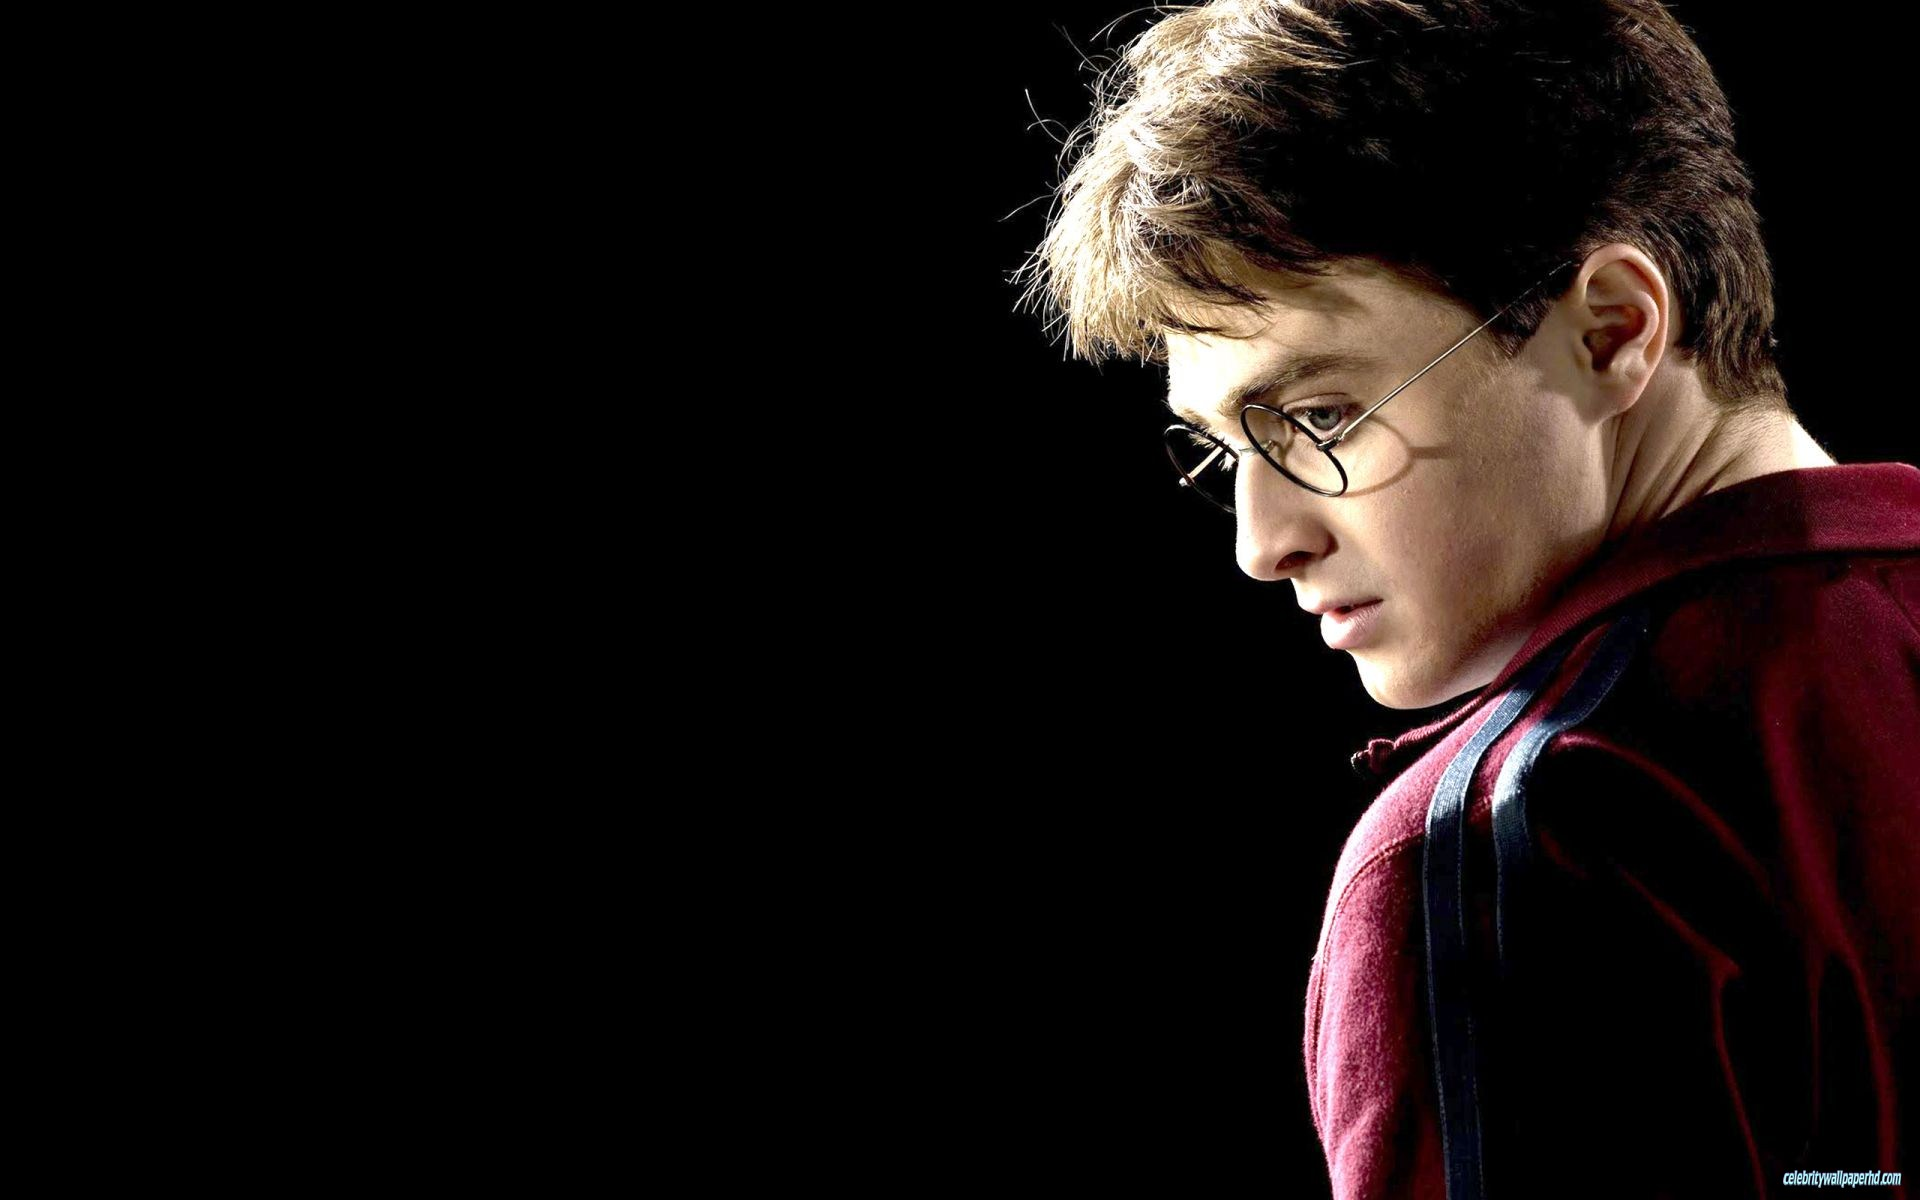 Daniel Radcliffe Wallpapers High Resolution And Quality